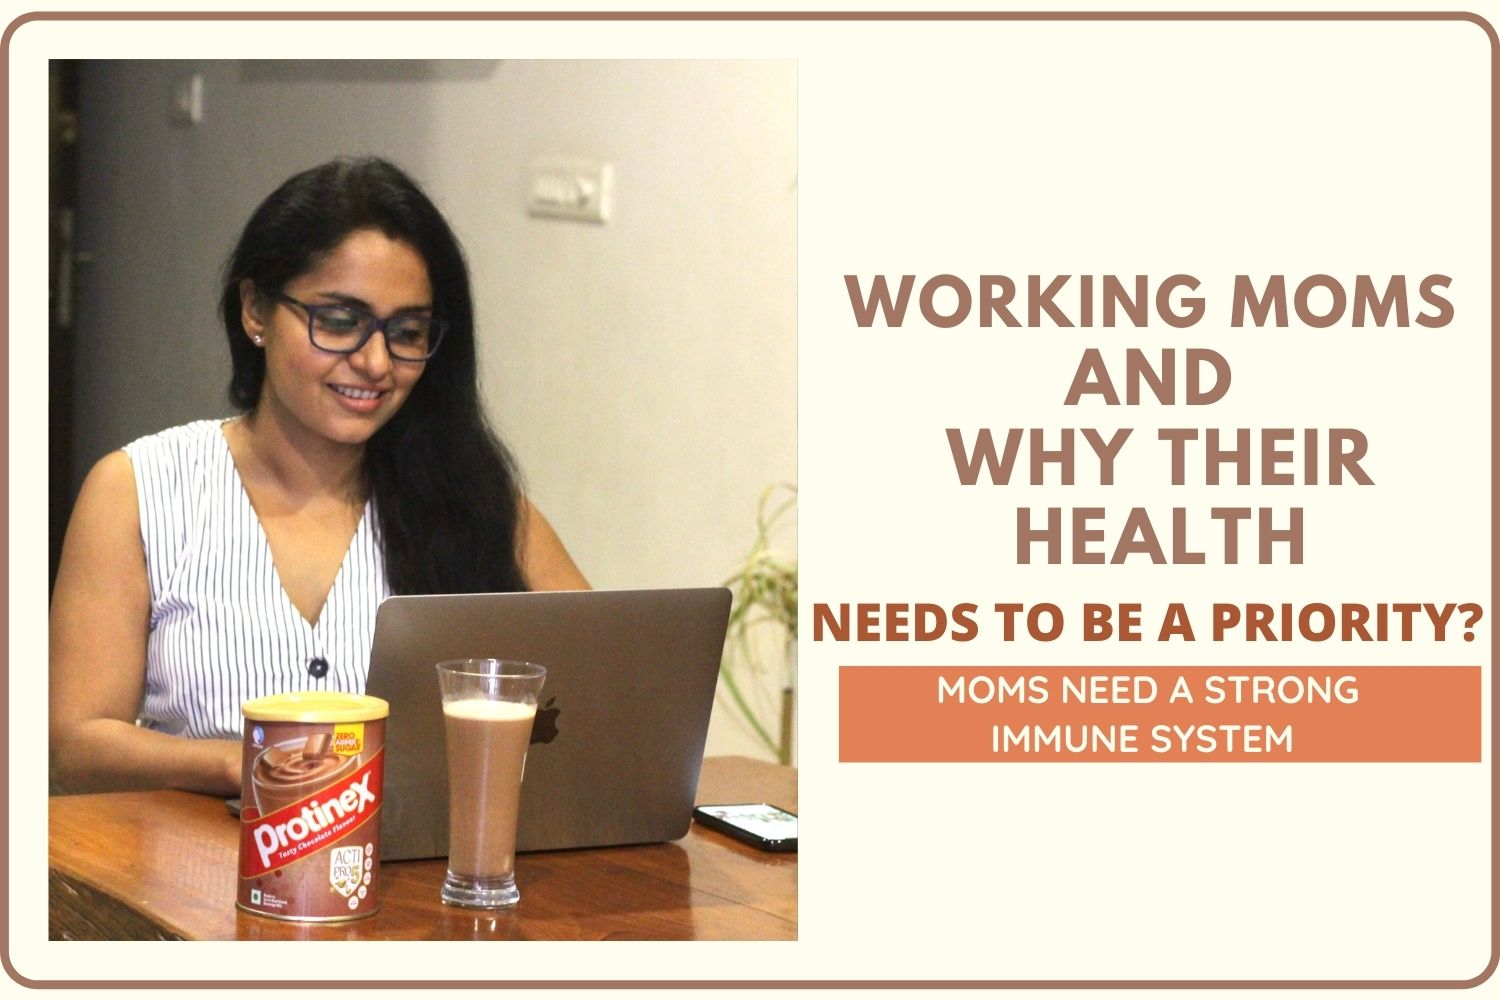 Protinex for Working Moms